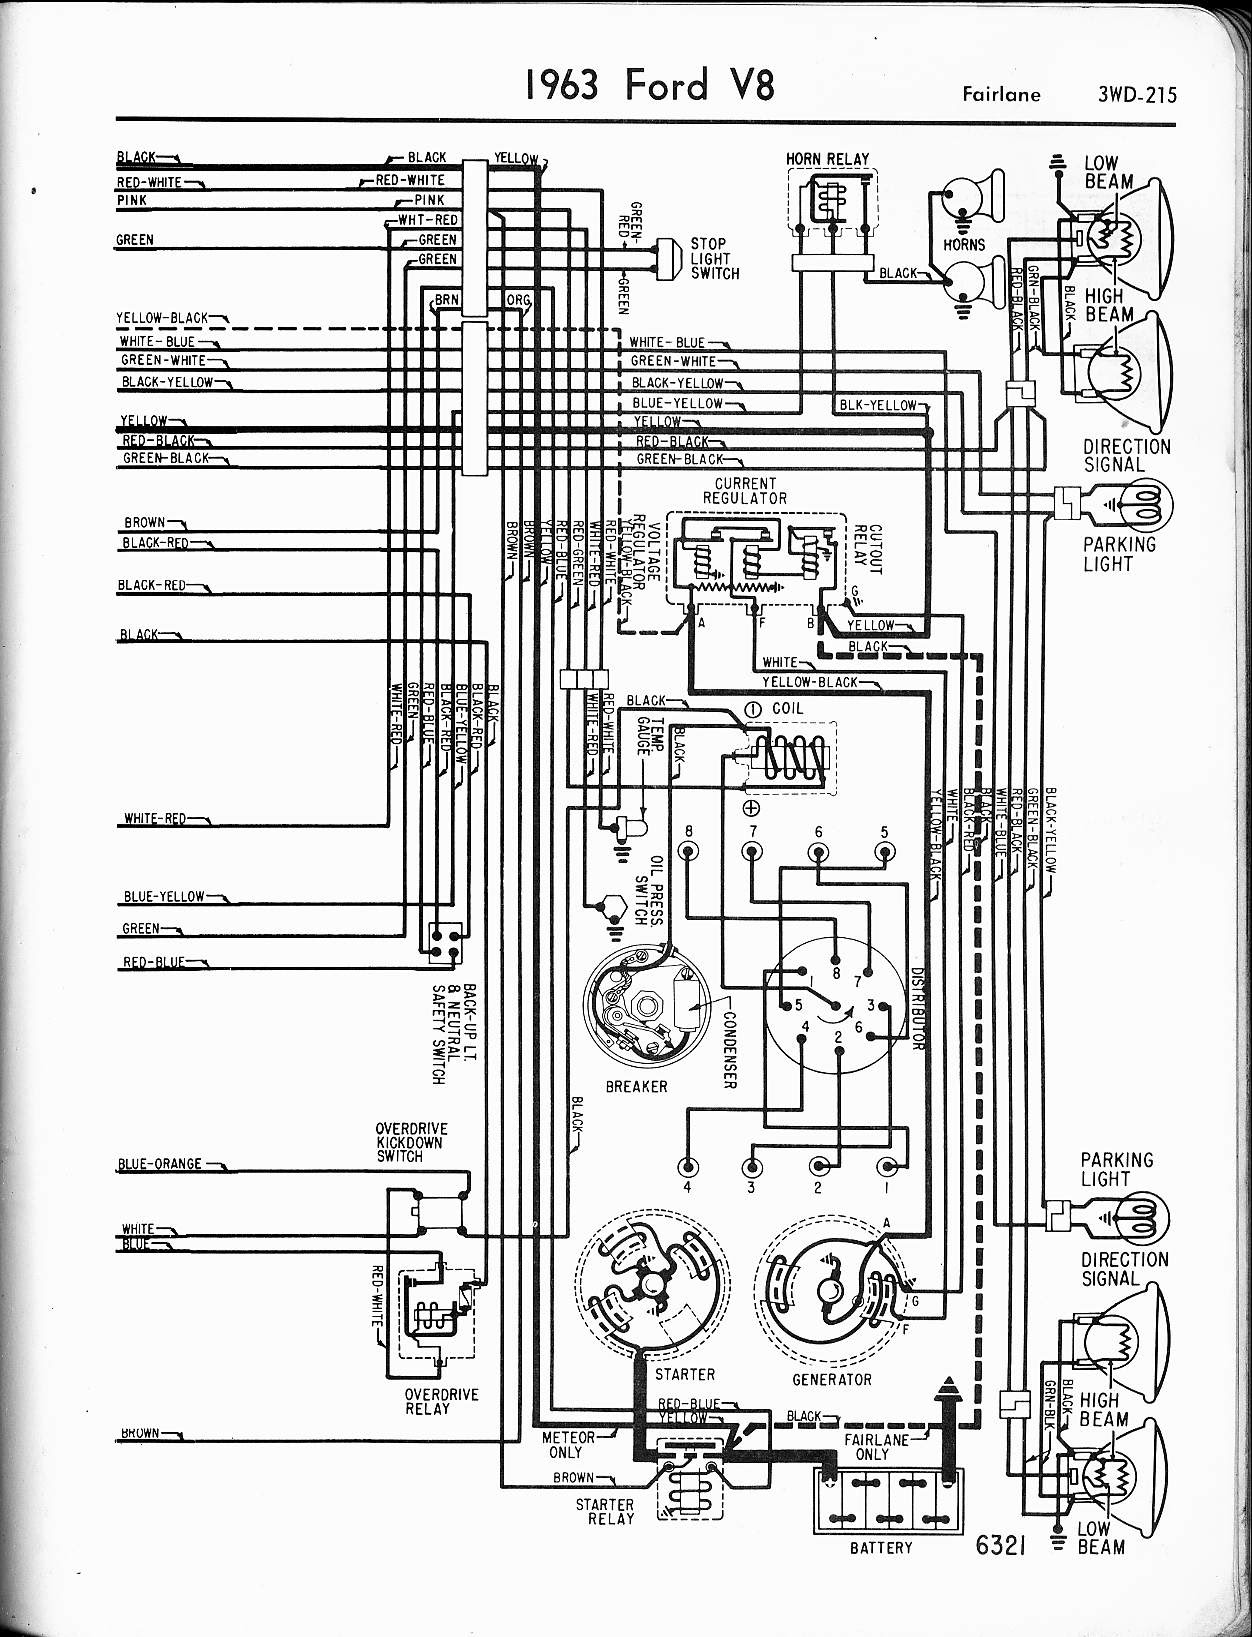 62 Comet Wiring Diagram FULL HD Version Wiring Diagram - LAST-DIAGRAM .EXPERTSUNIVERSITY.ITDiagram Database